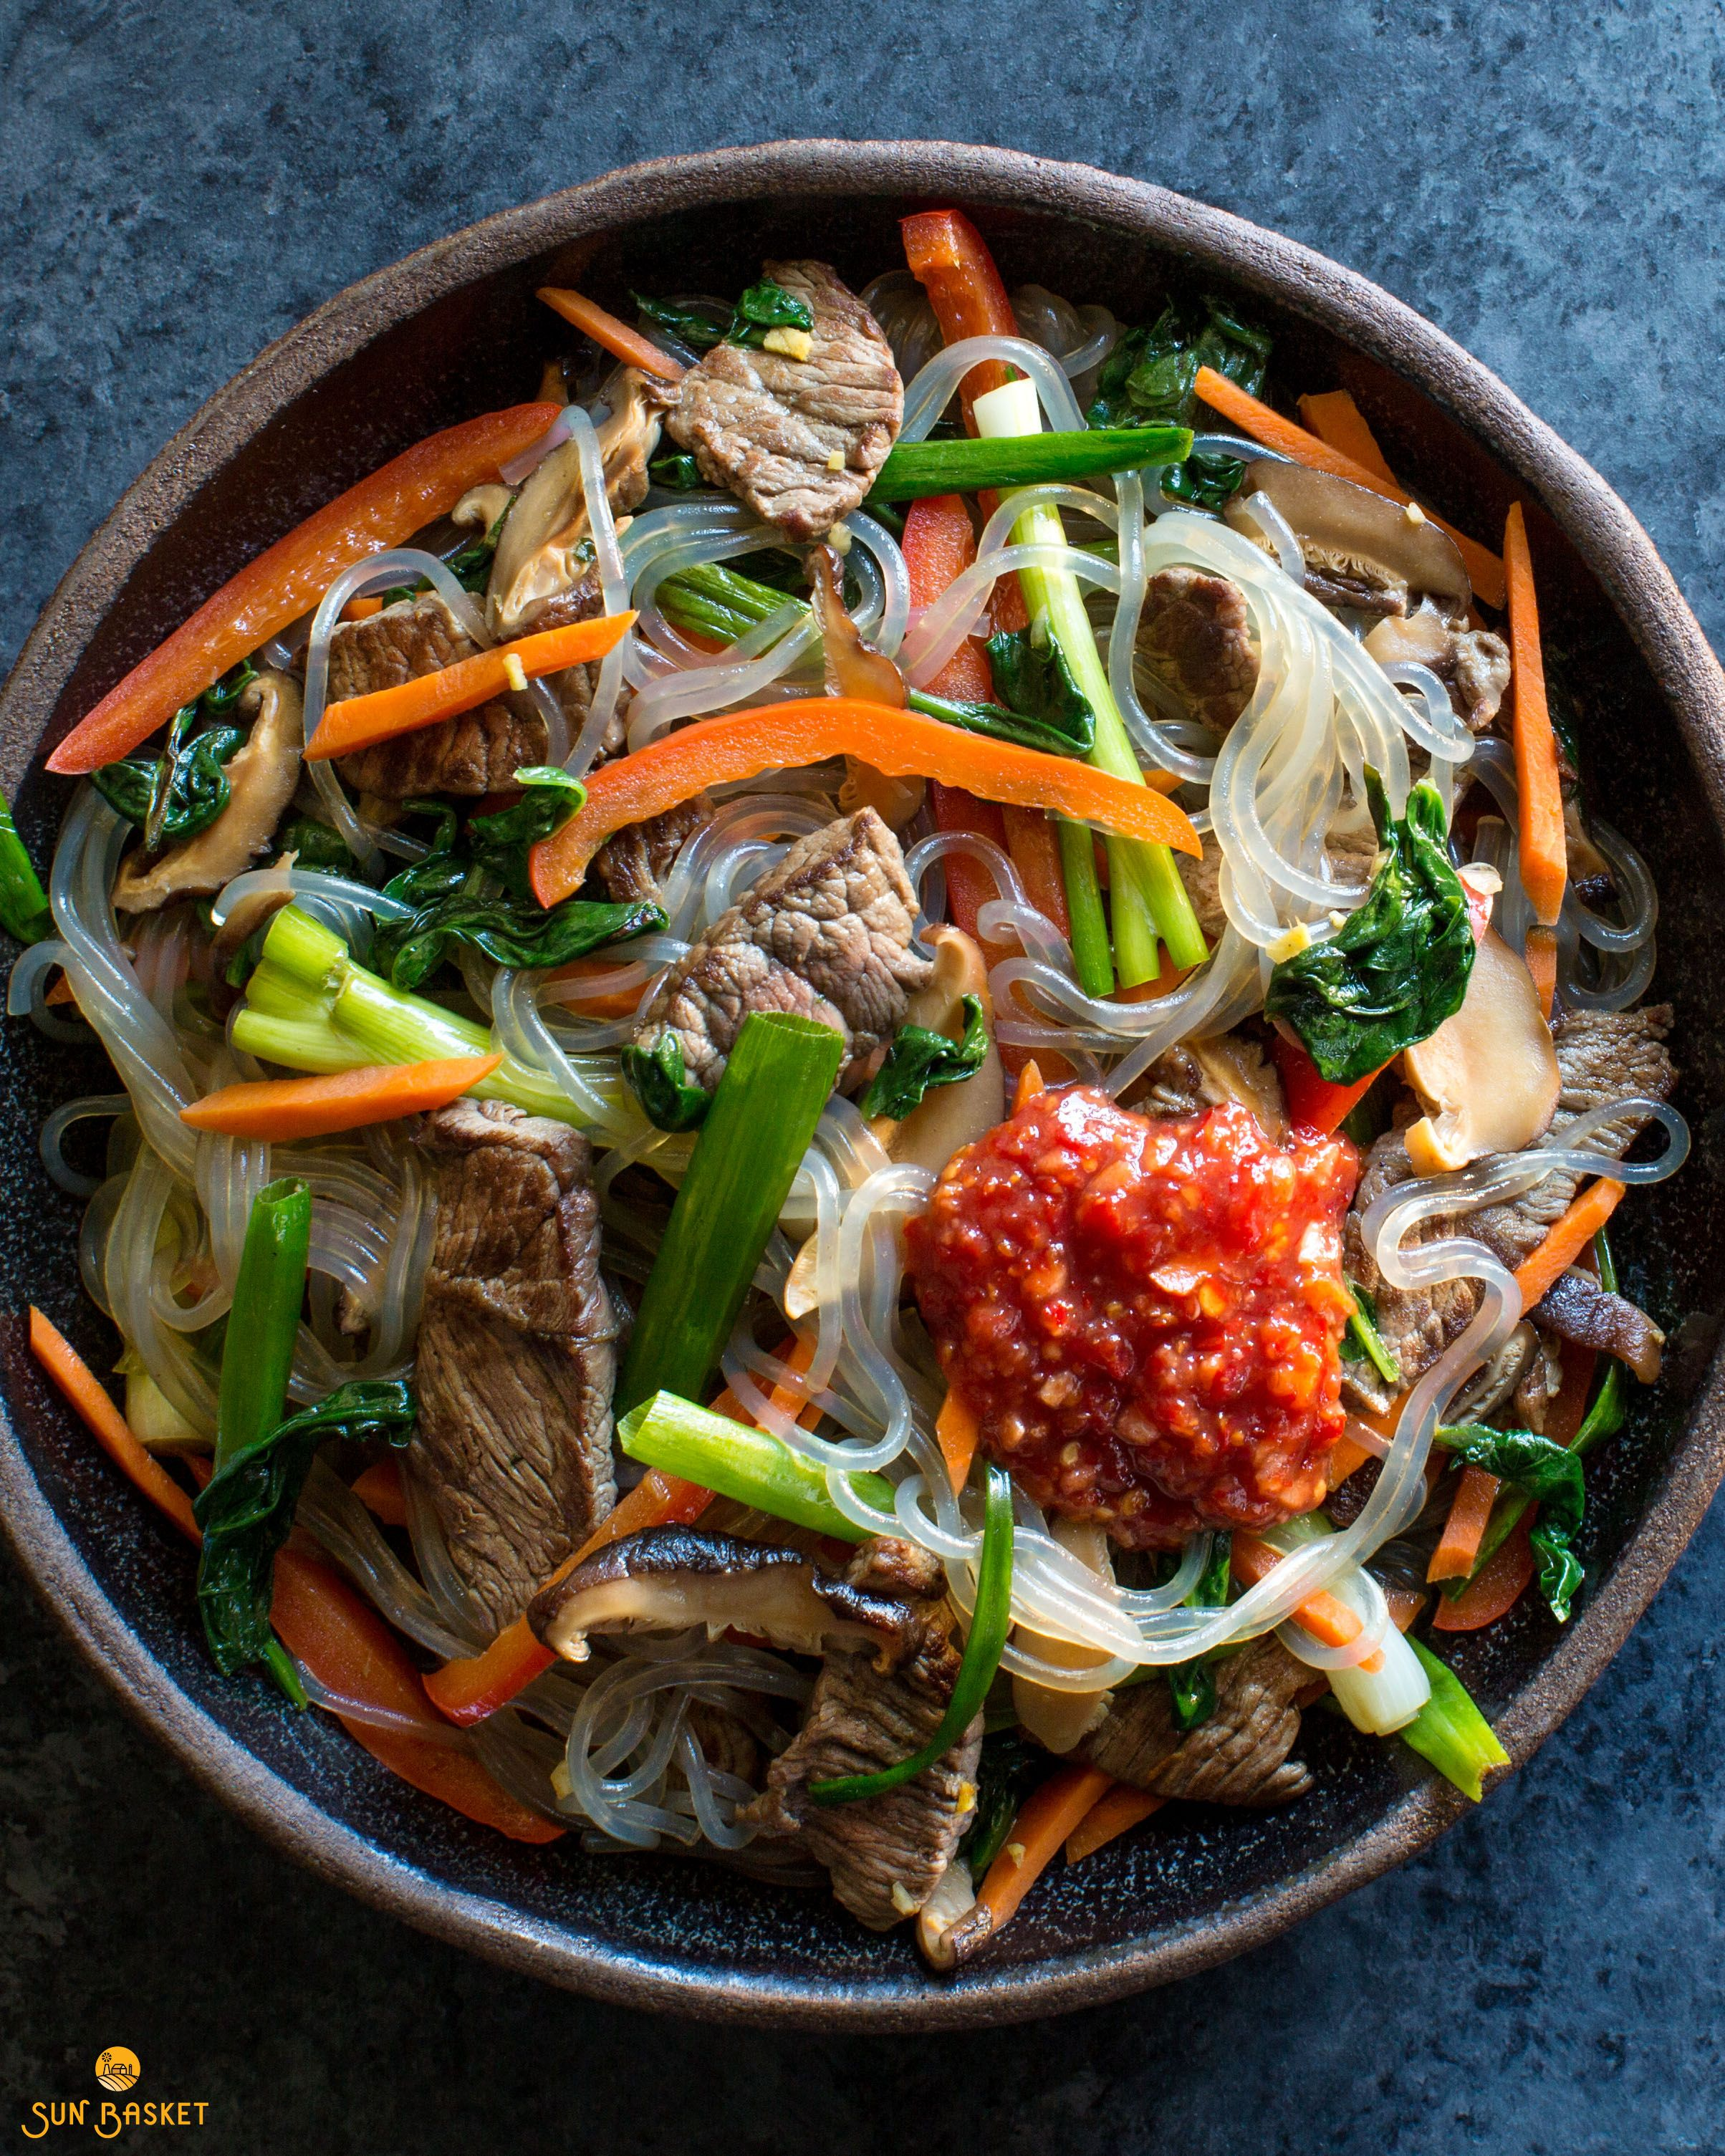 Korean Steak Japchae With Glass Noodles And Stir Fried Vegetables Recipe Fried Vegetables Japchae Glass Noodles